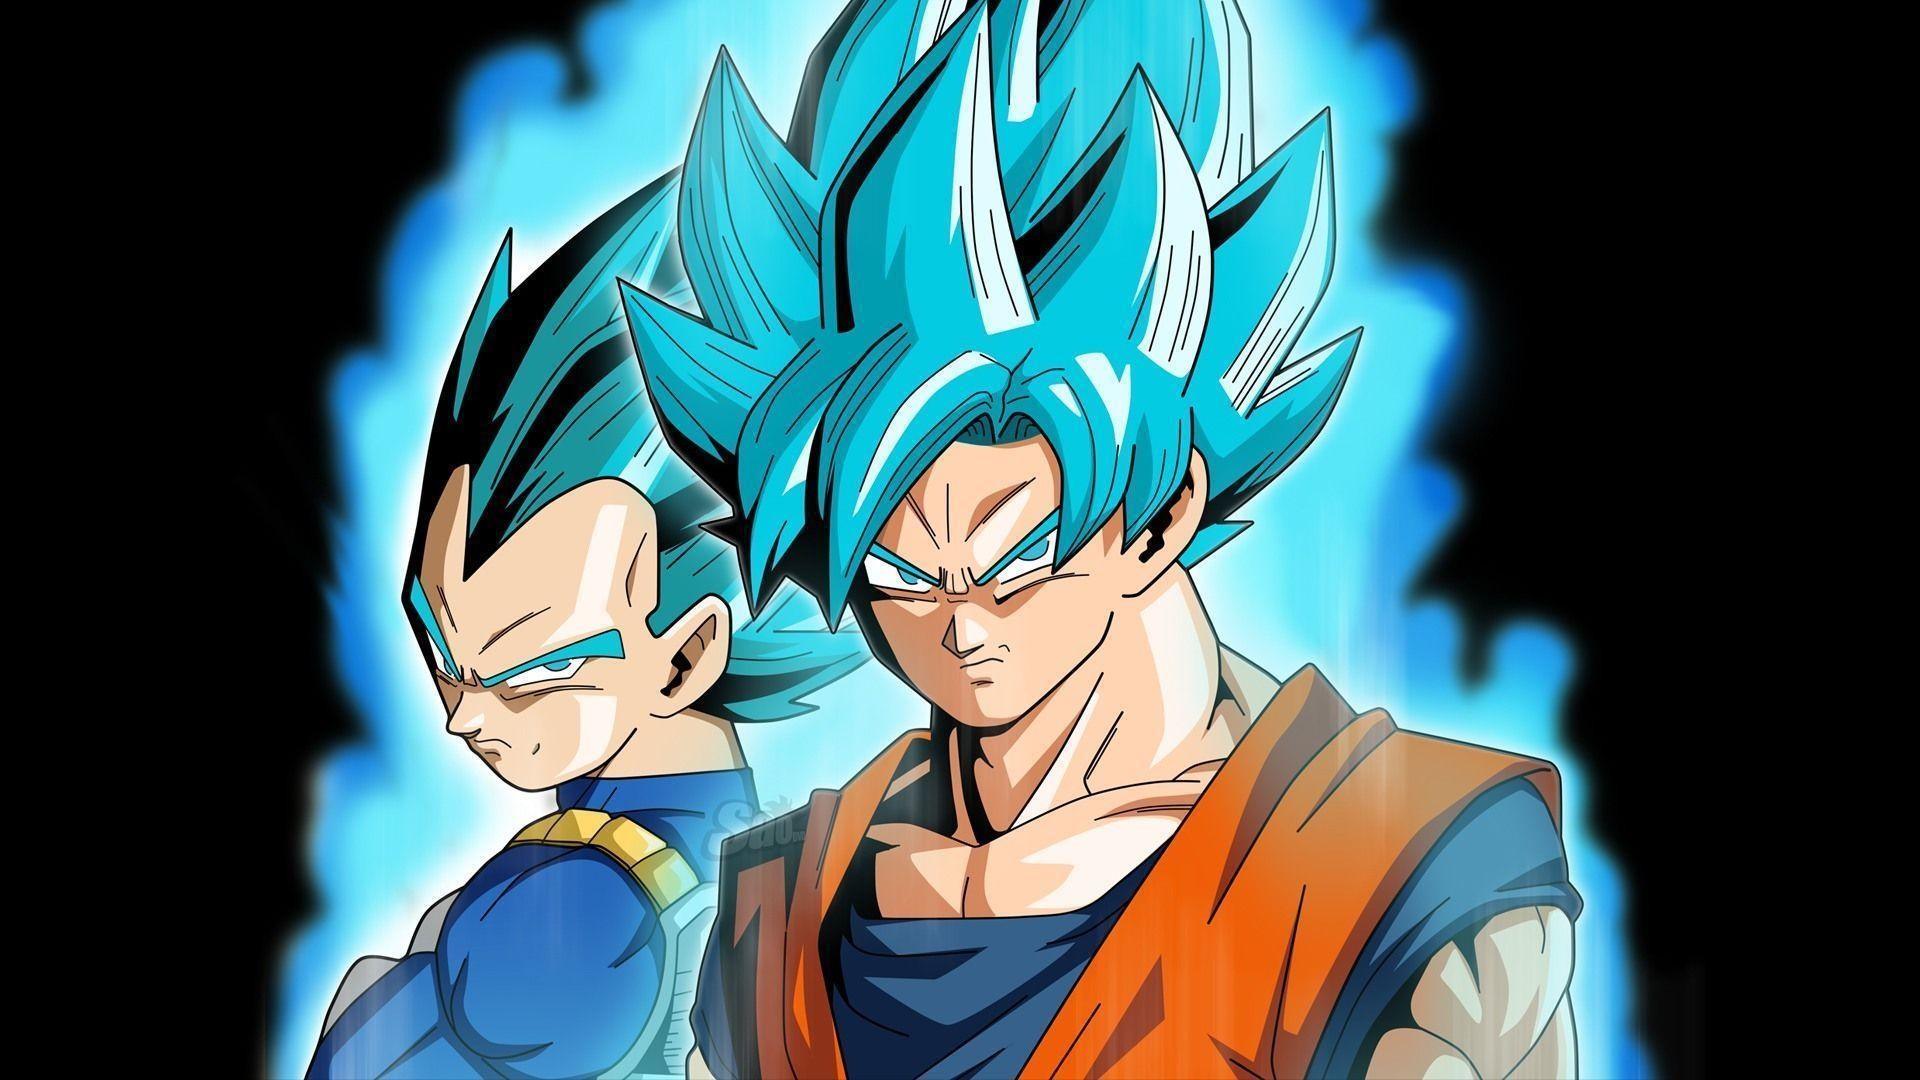 Download Goku Super Saiyan Blue Wallpaper  Background